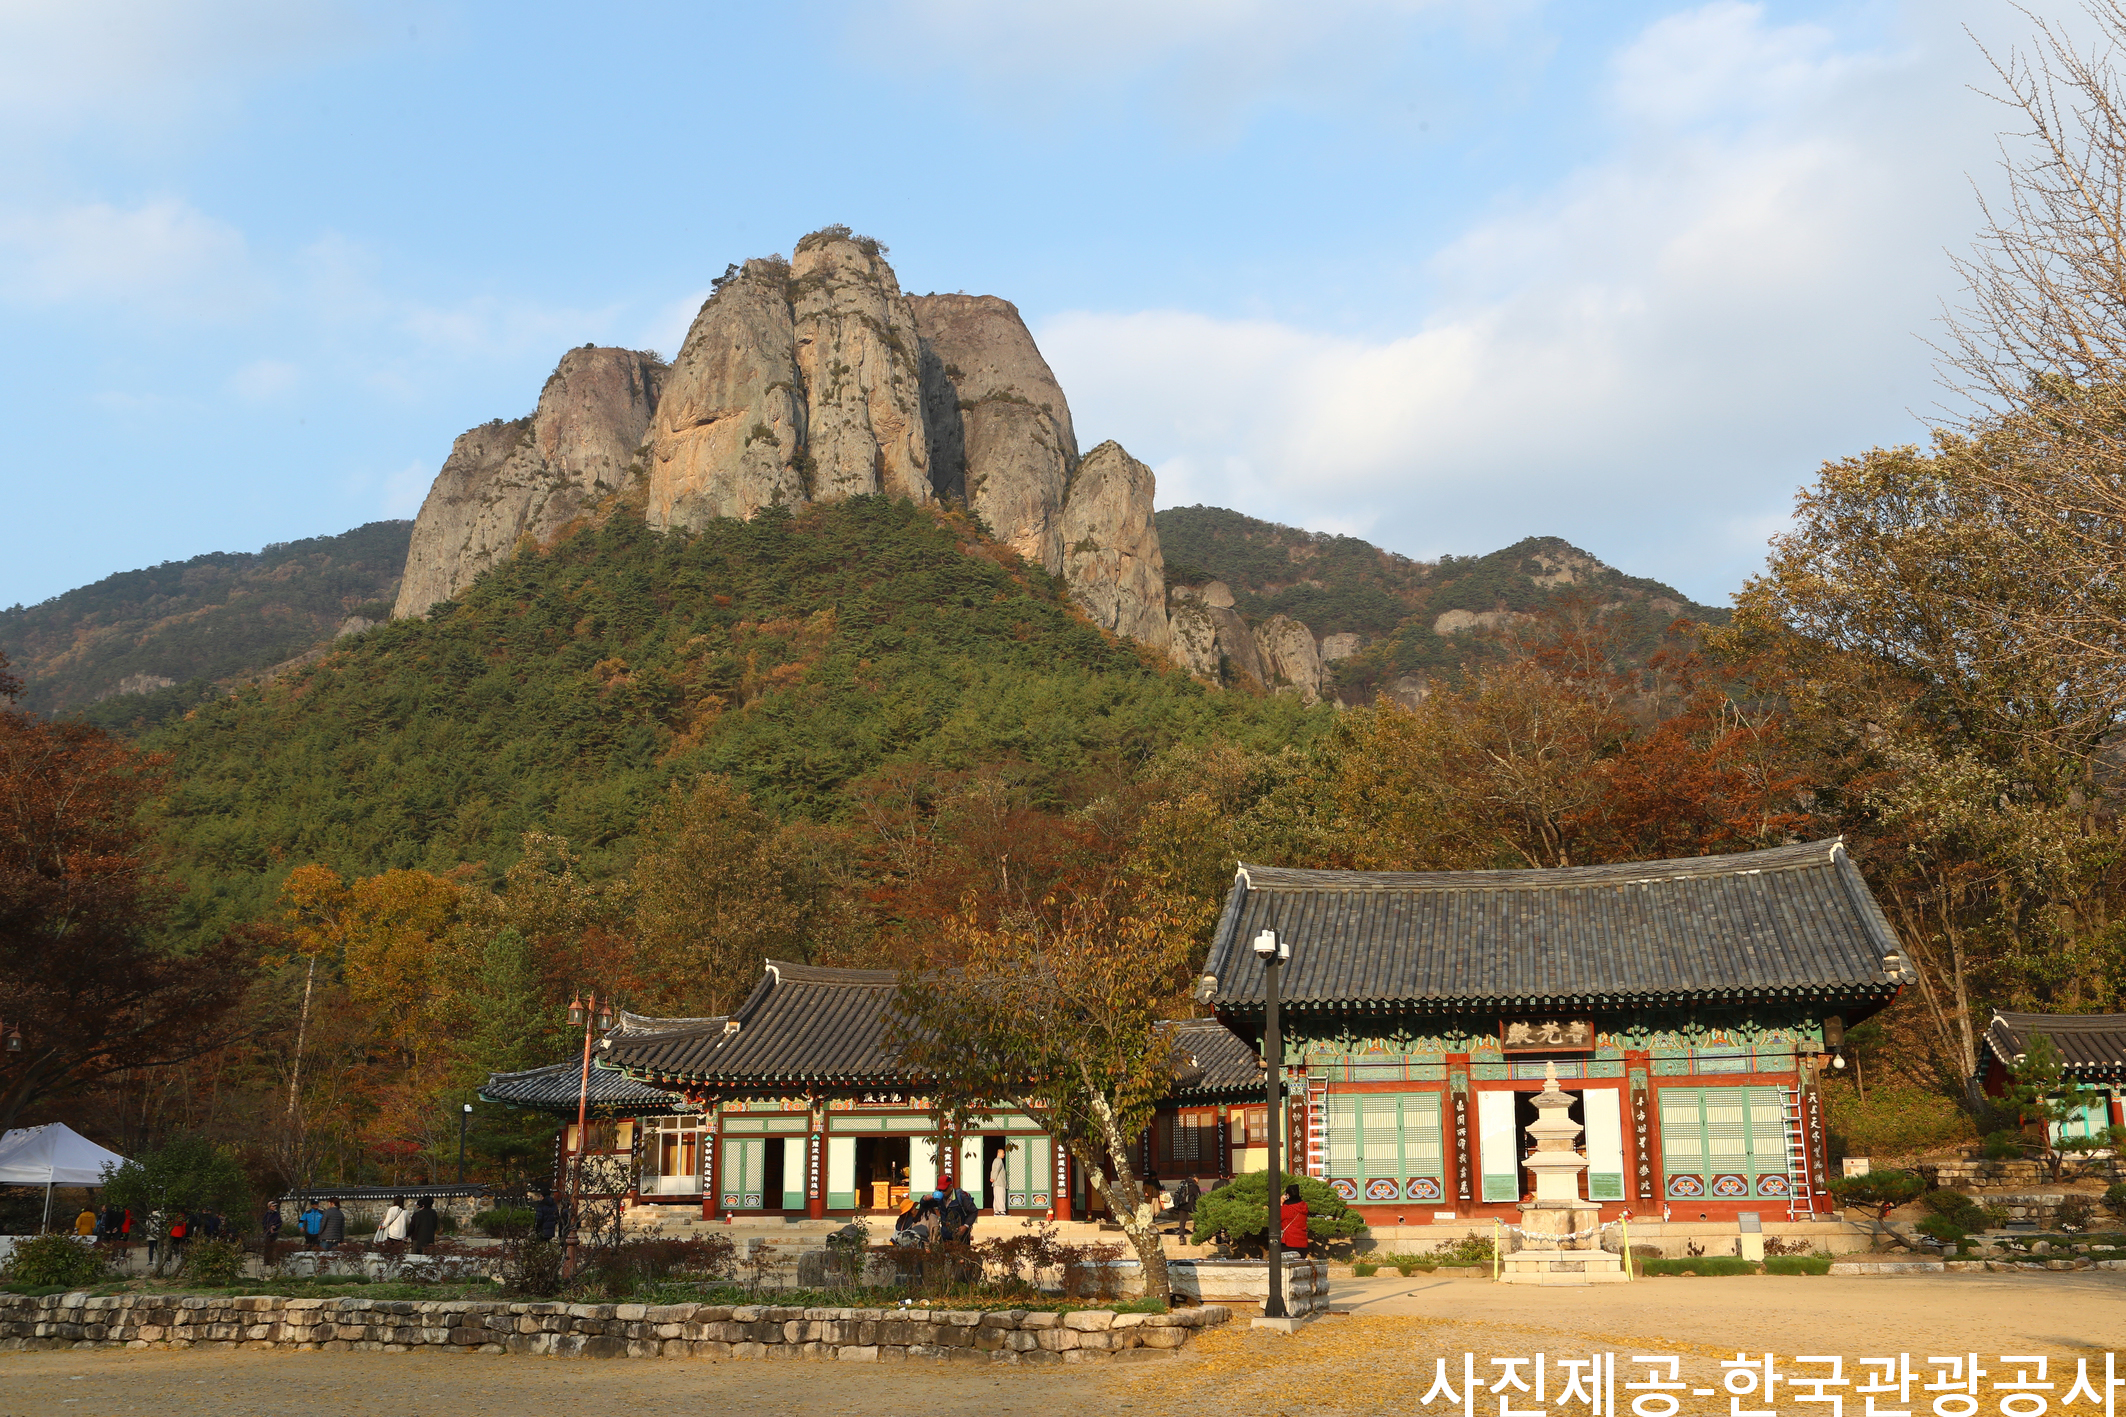 (Autumn) Juwangsan National Park Foliage One Day Tour